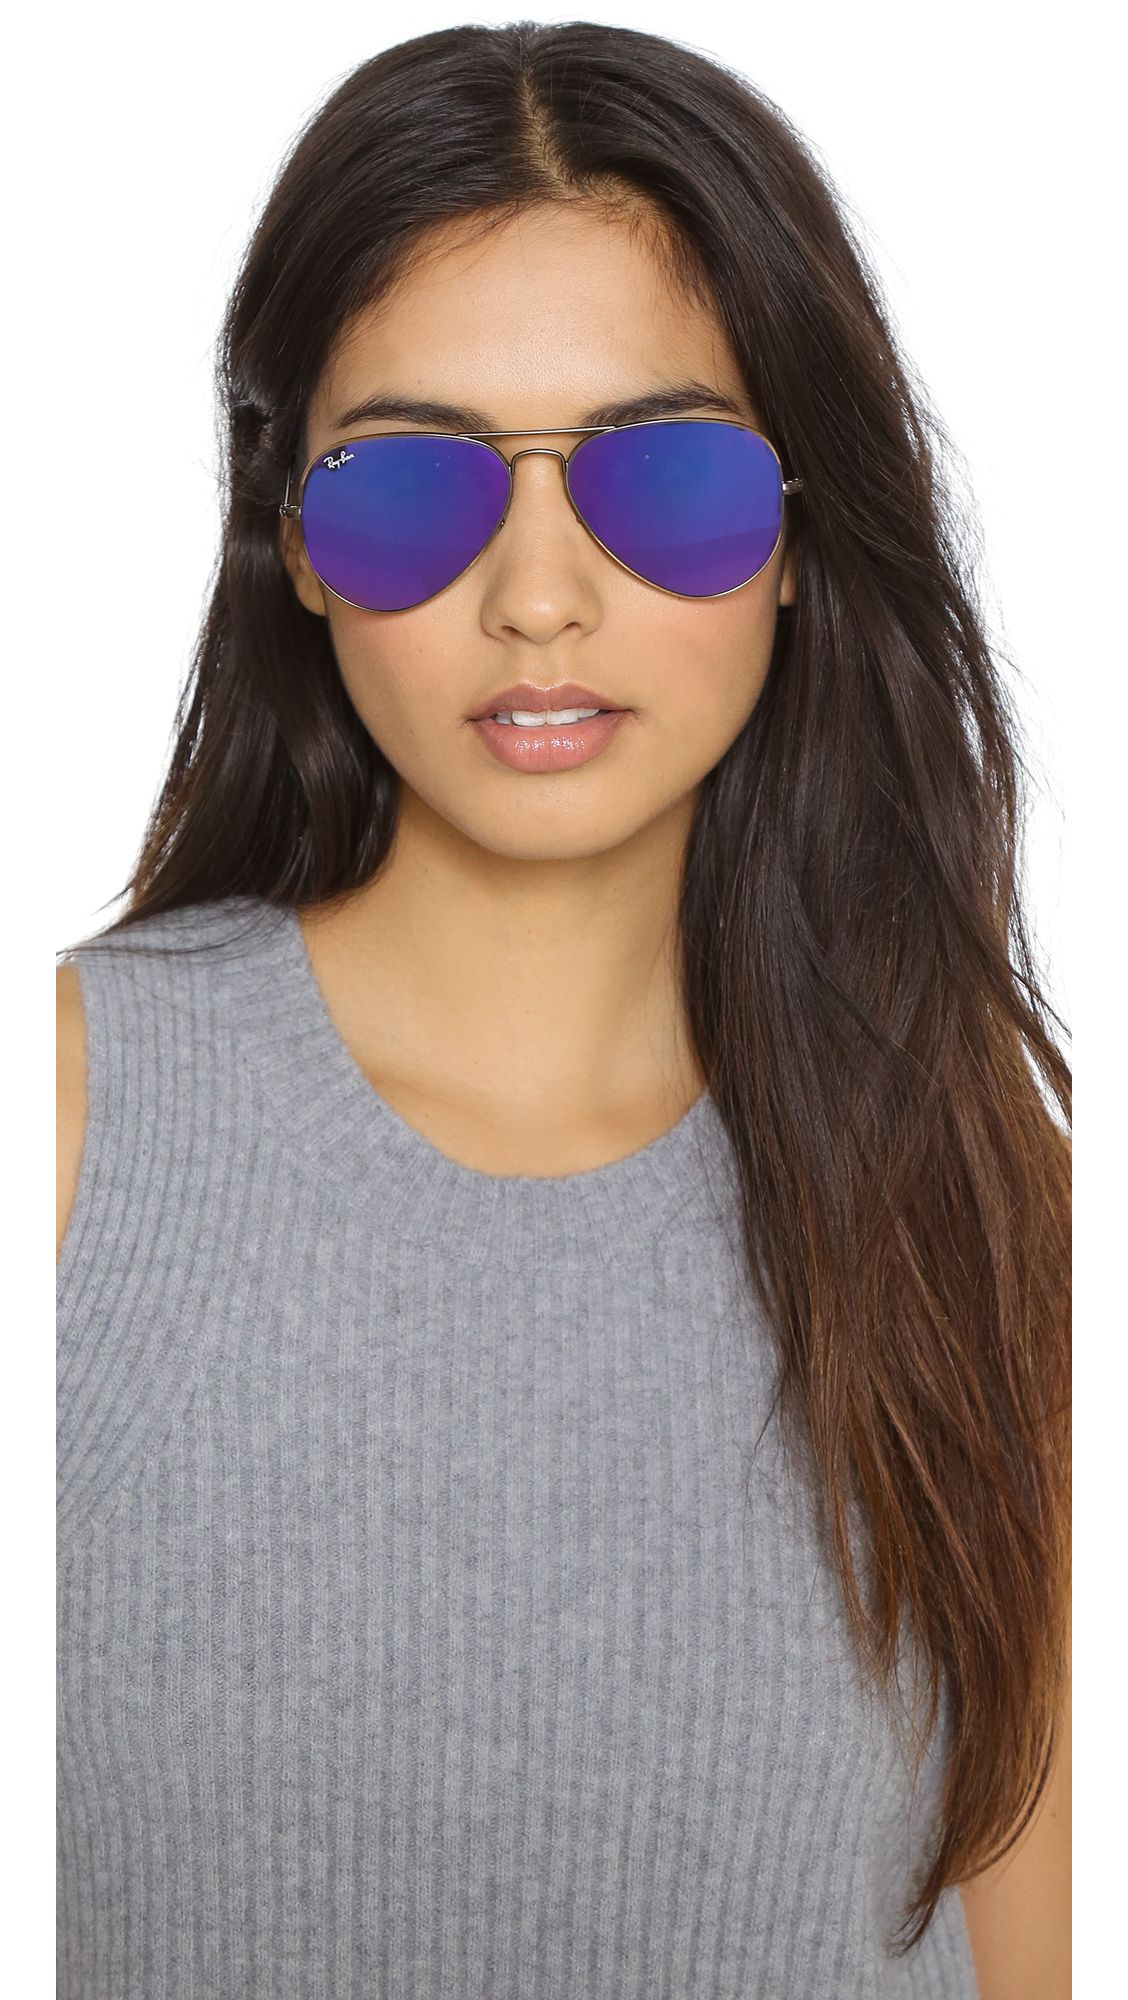 Ray Ban Mirrored Aviator Sunglasses Ray Ban Sunglasses